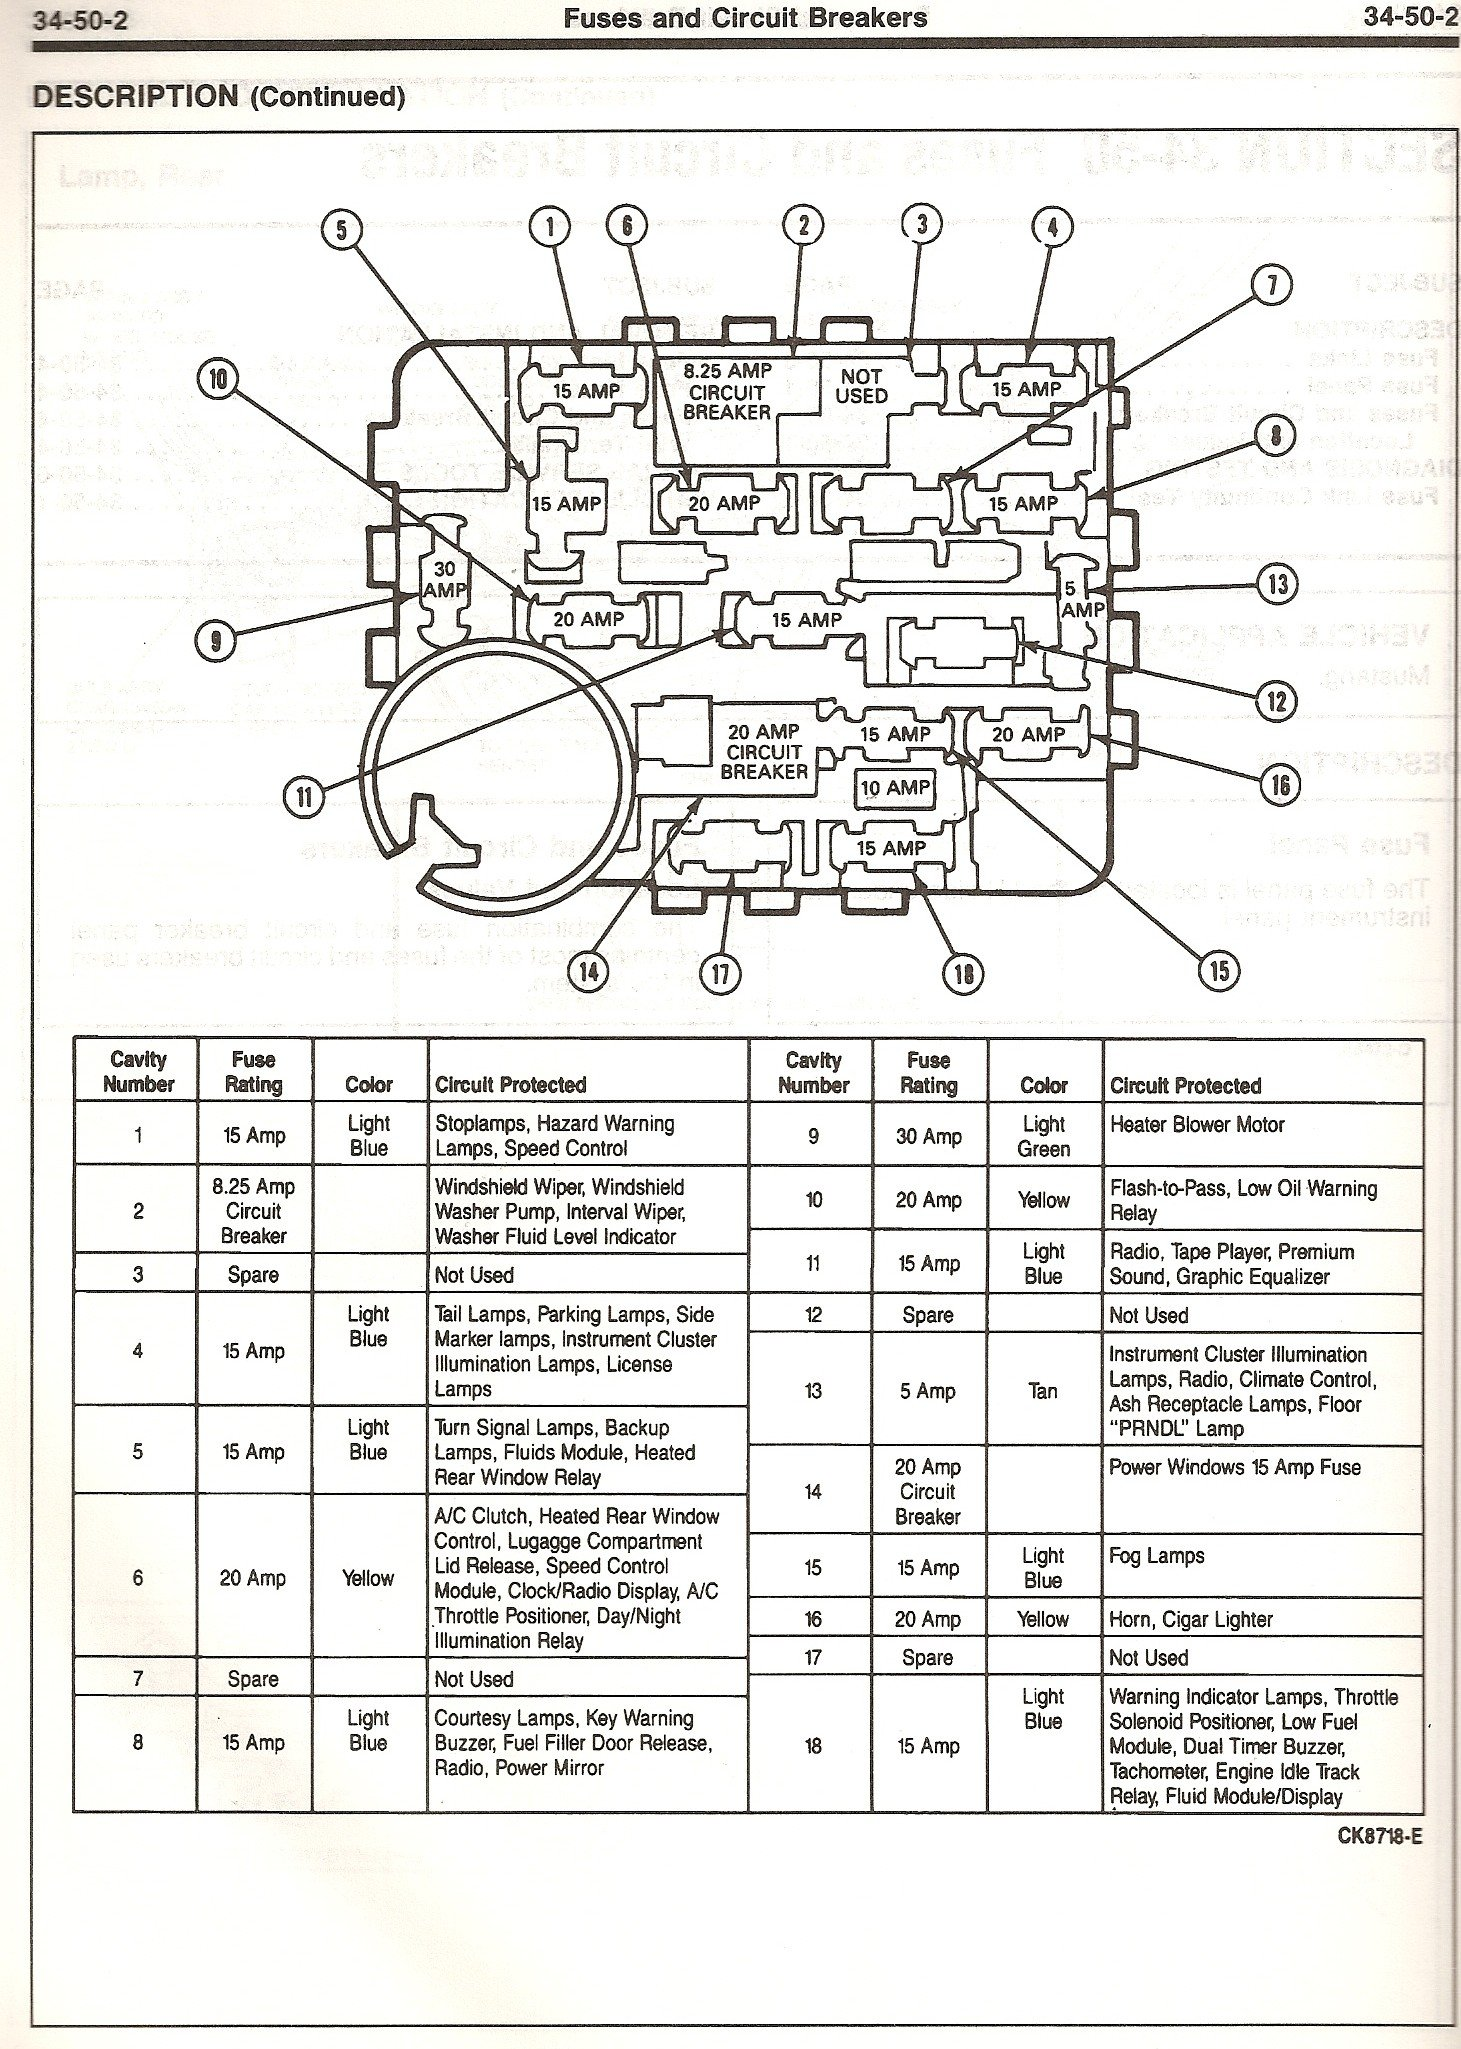 30633d1185070172 1990 2 3 mustang missing scan7 04 gt fuse box wiring diagram simonand 2006 mustang gt fuse box diagram at pacquiaovsvargaslive.co